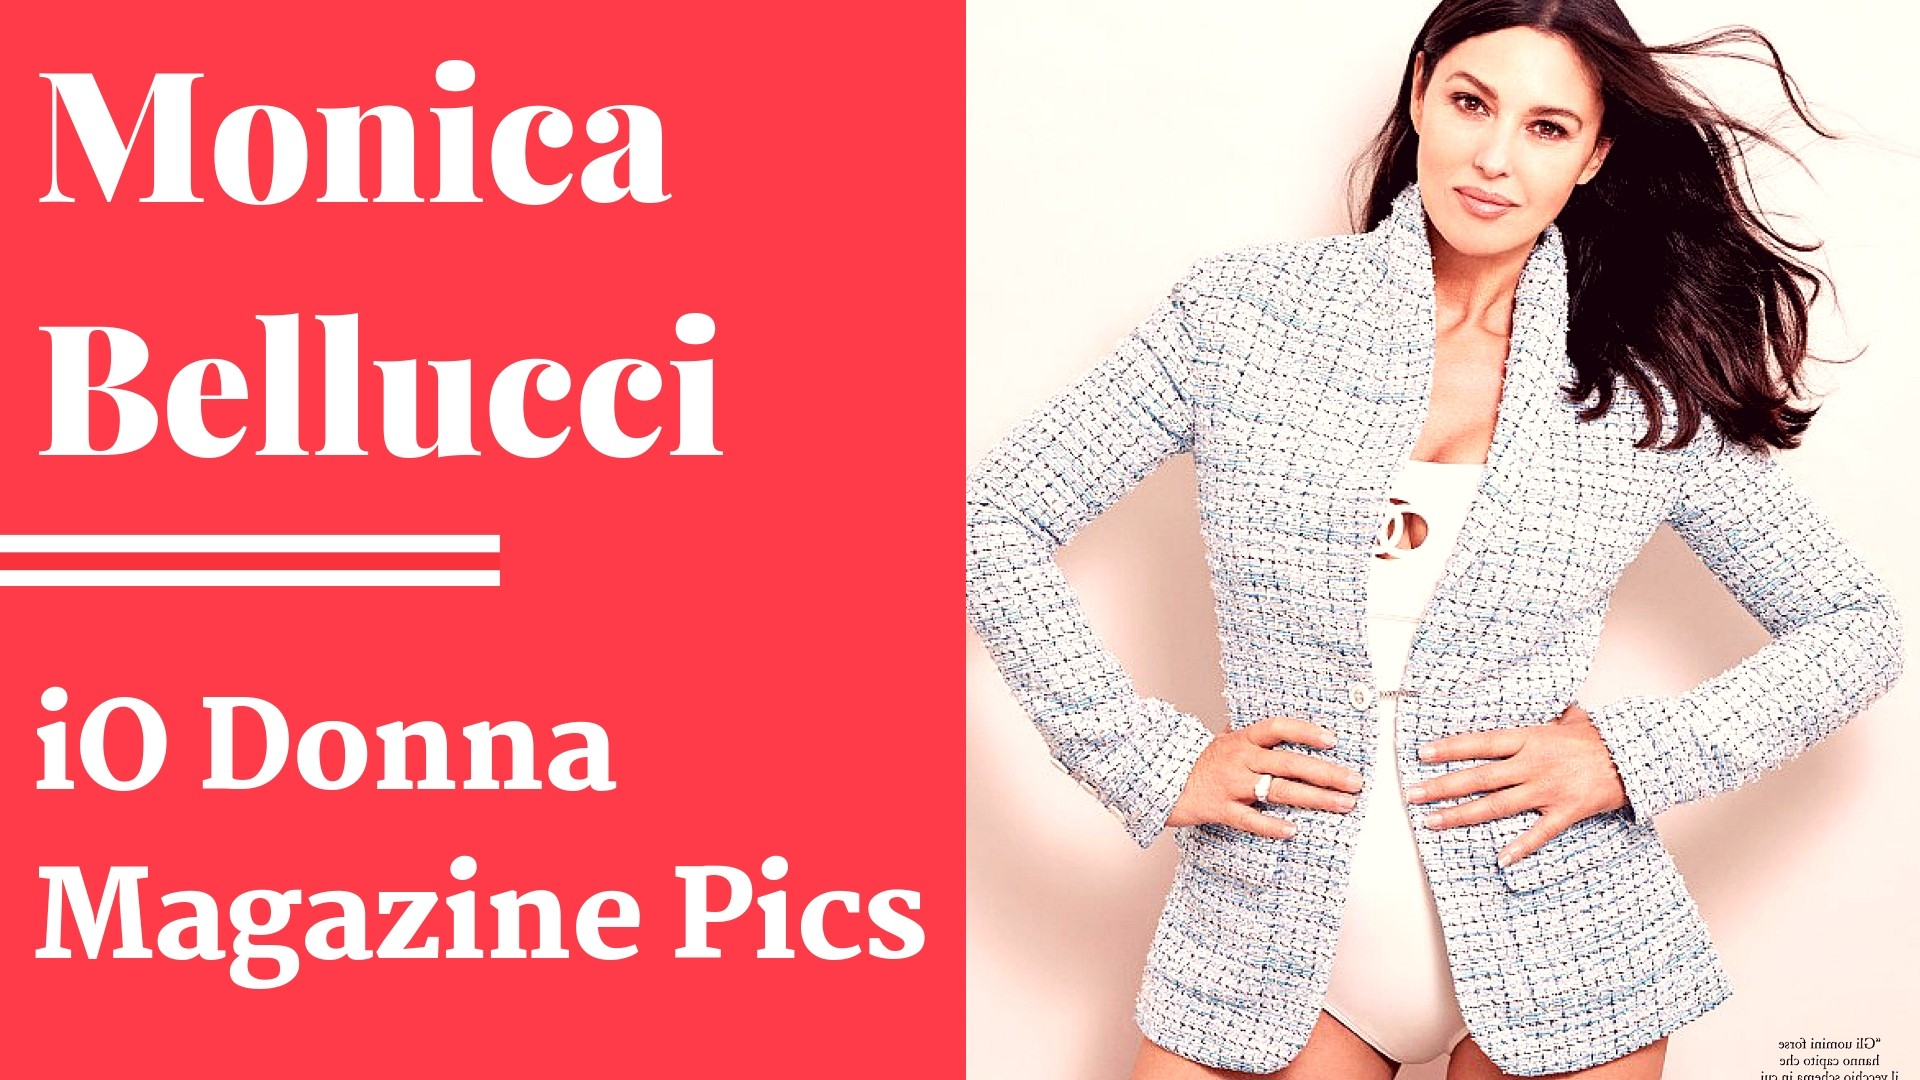 Monica Bellucci - iO Donna Magazine Photos - Sexy Actress Pictures | Hot Actress Pictures - ActressSnaps.com